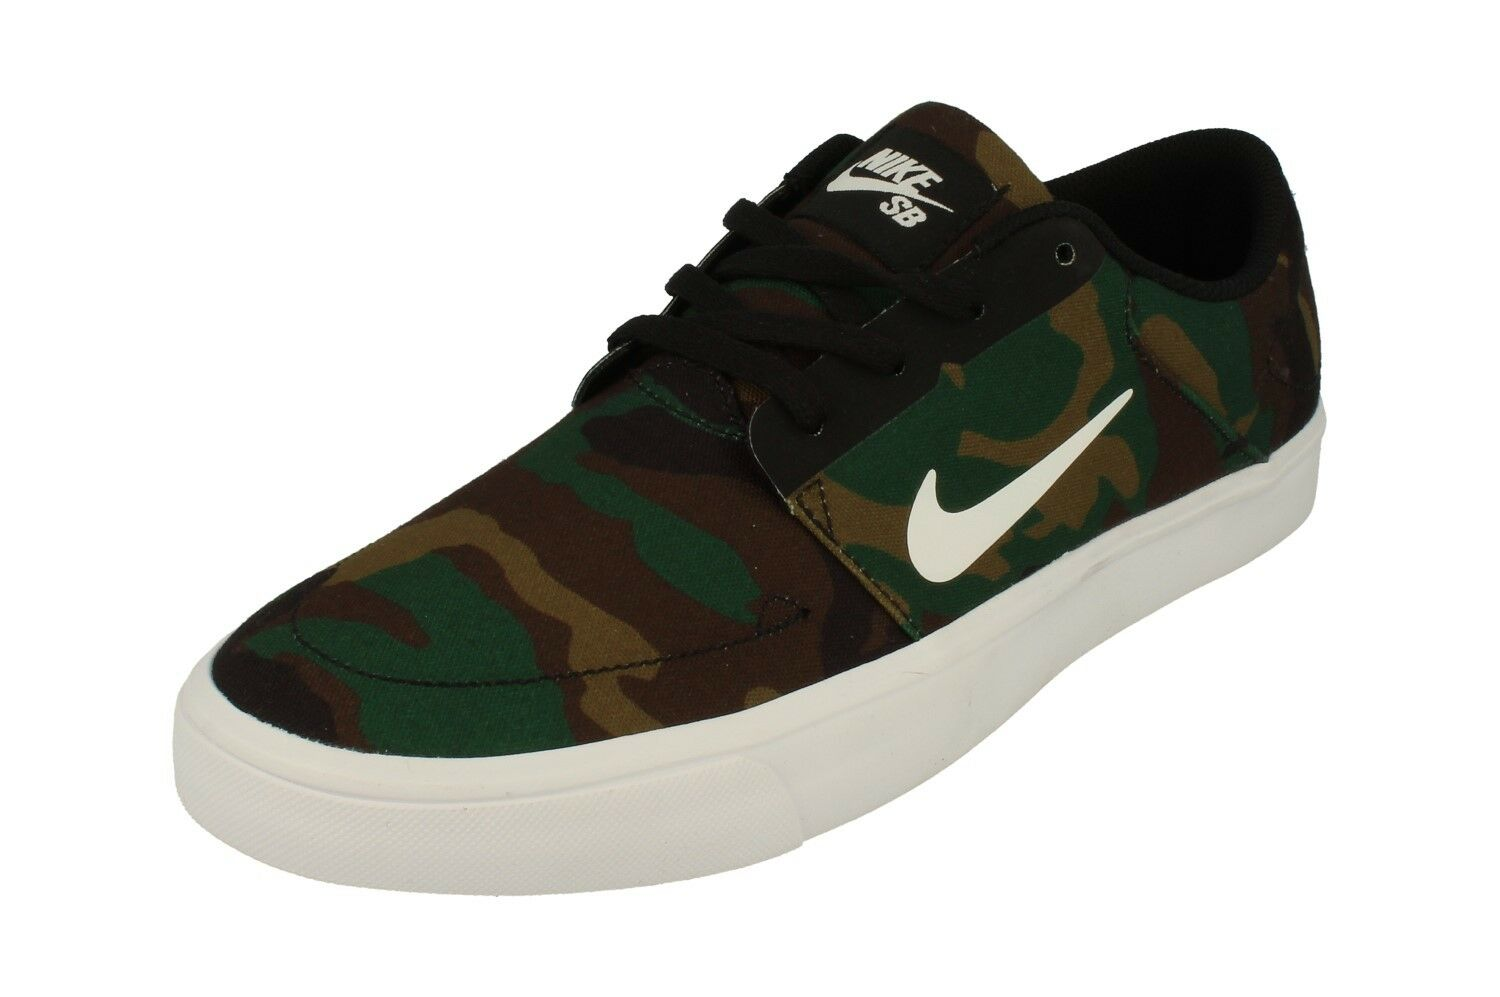 Nike Sb Portmore Canvas Mens Trainers 723874 Sneakers Shoes 011